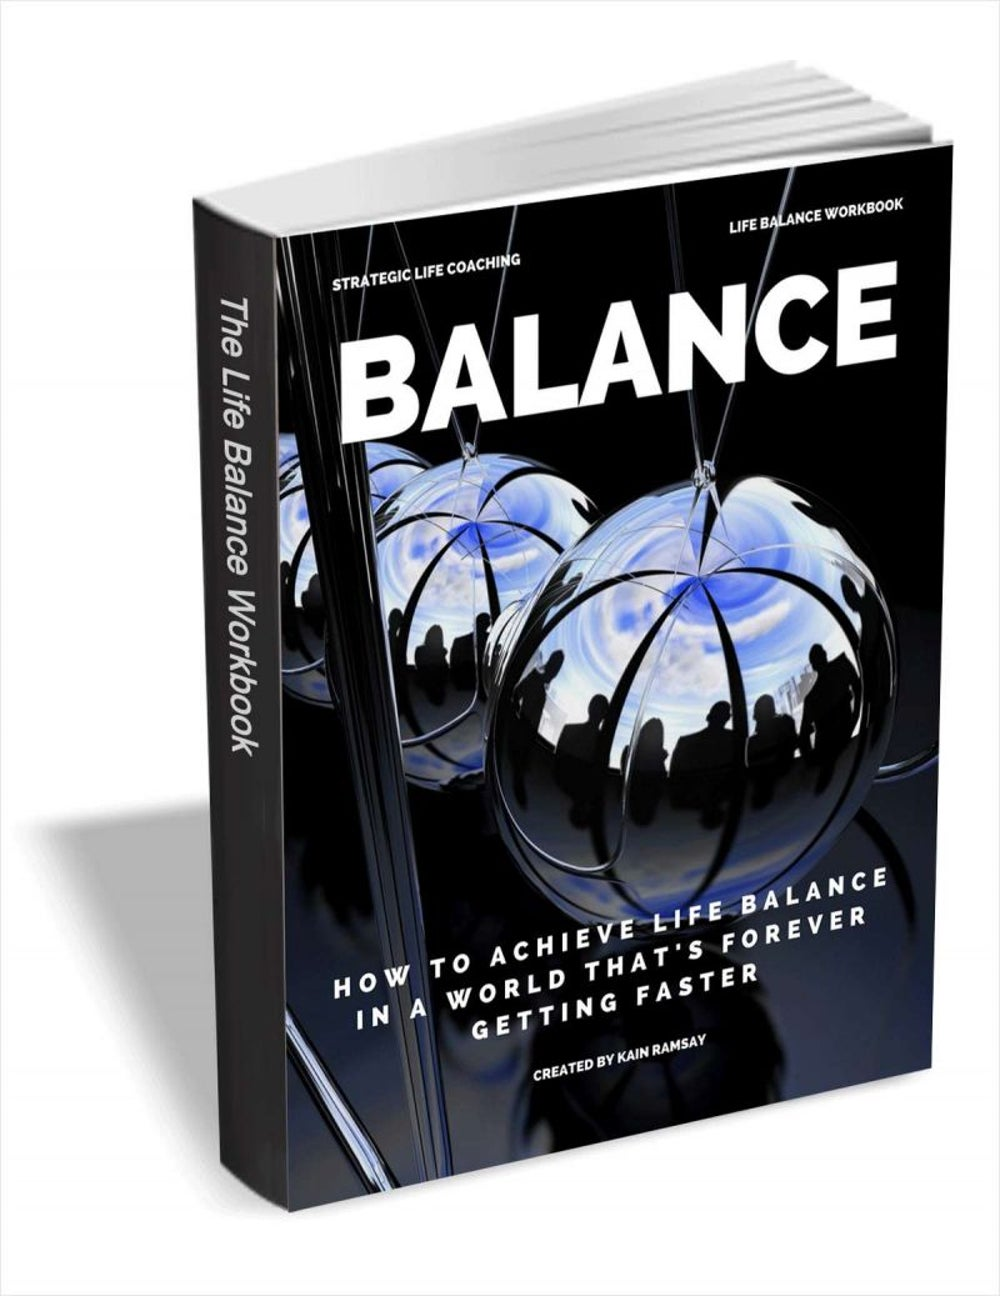 Balance – How to Achieve Life Balance in a World that's Forever Getting Faster